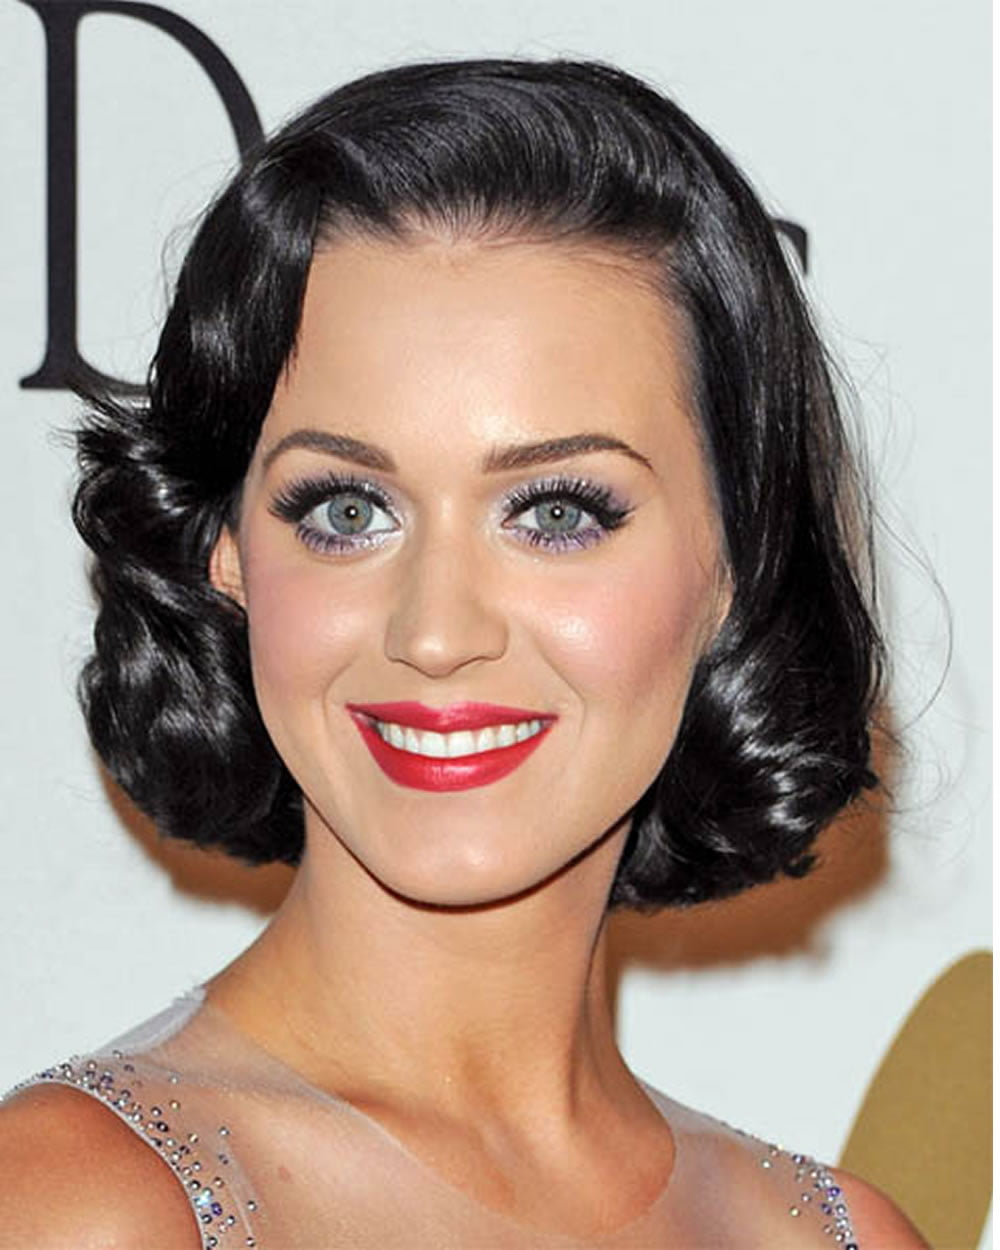 Short haircuts of famous women